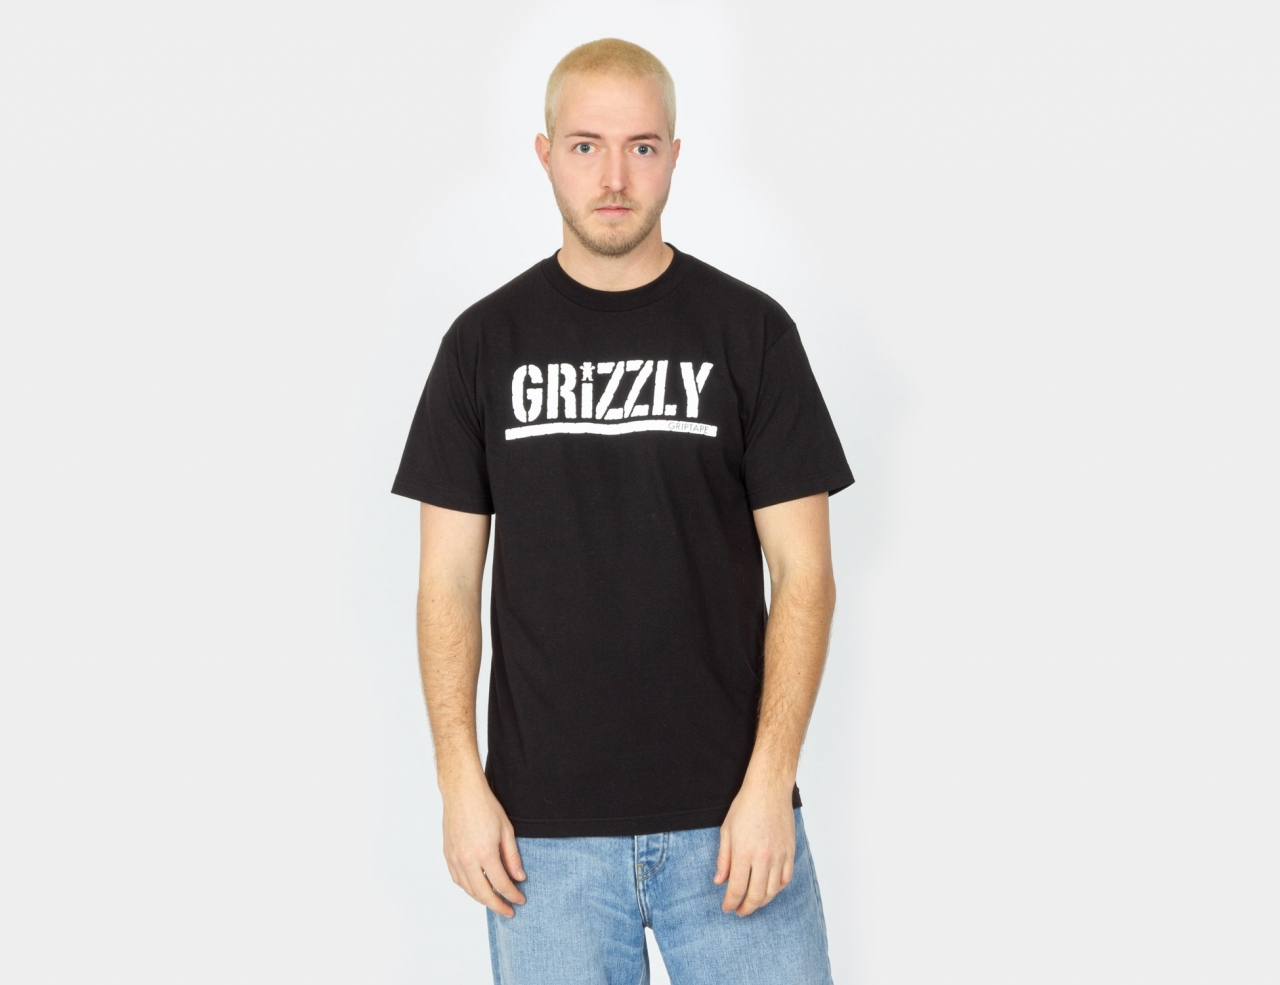 Grizzly Stamp Shirt - Black / White